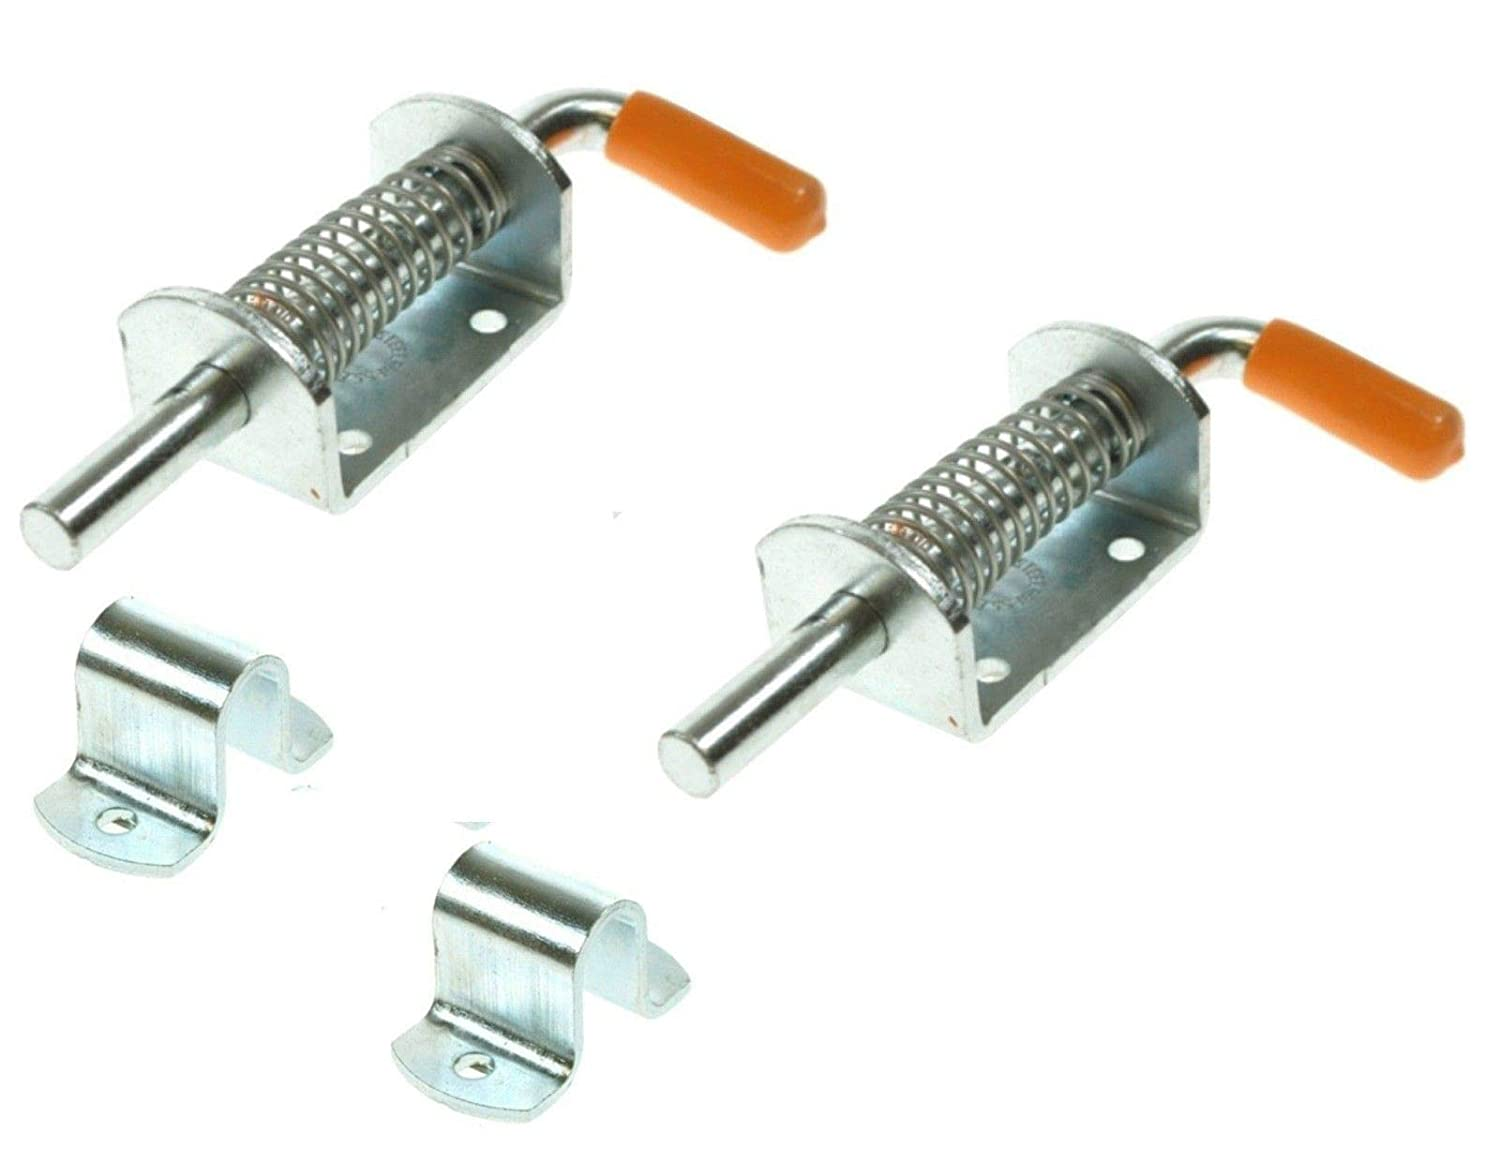 2 x SPRING LOADED BOLTS WITH LATCHES TRAILER HATCH DOOR MP81410//81310 MAYPOLE